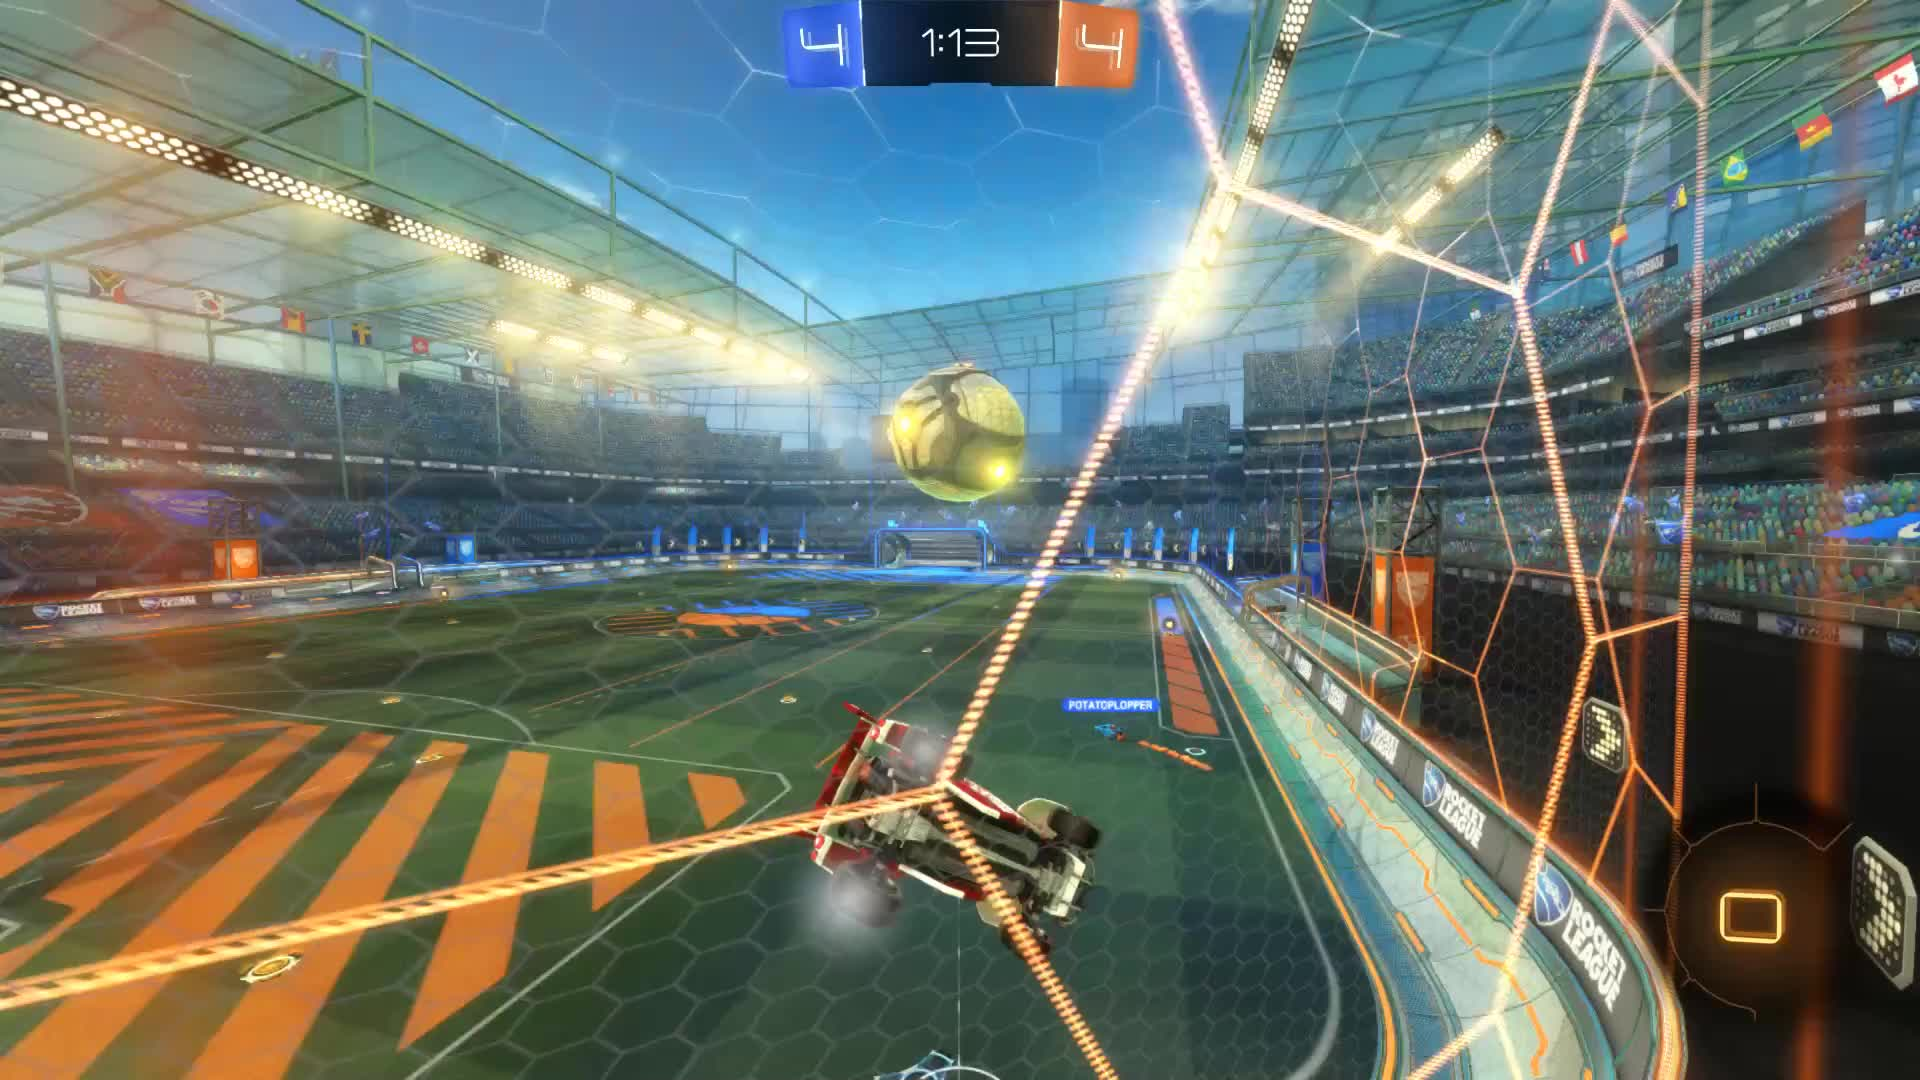 Gif Your Game, GifYourGame, Goal, Rocket League, RocketLeague, iLLixer, Goal 9: iLLixer GIFs